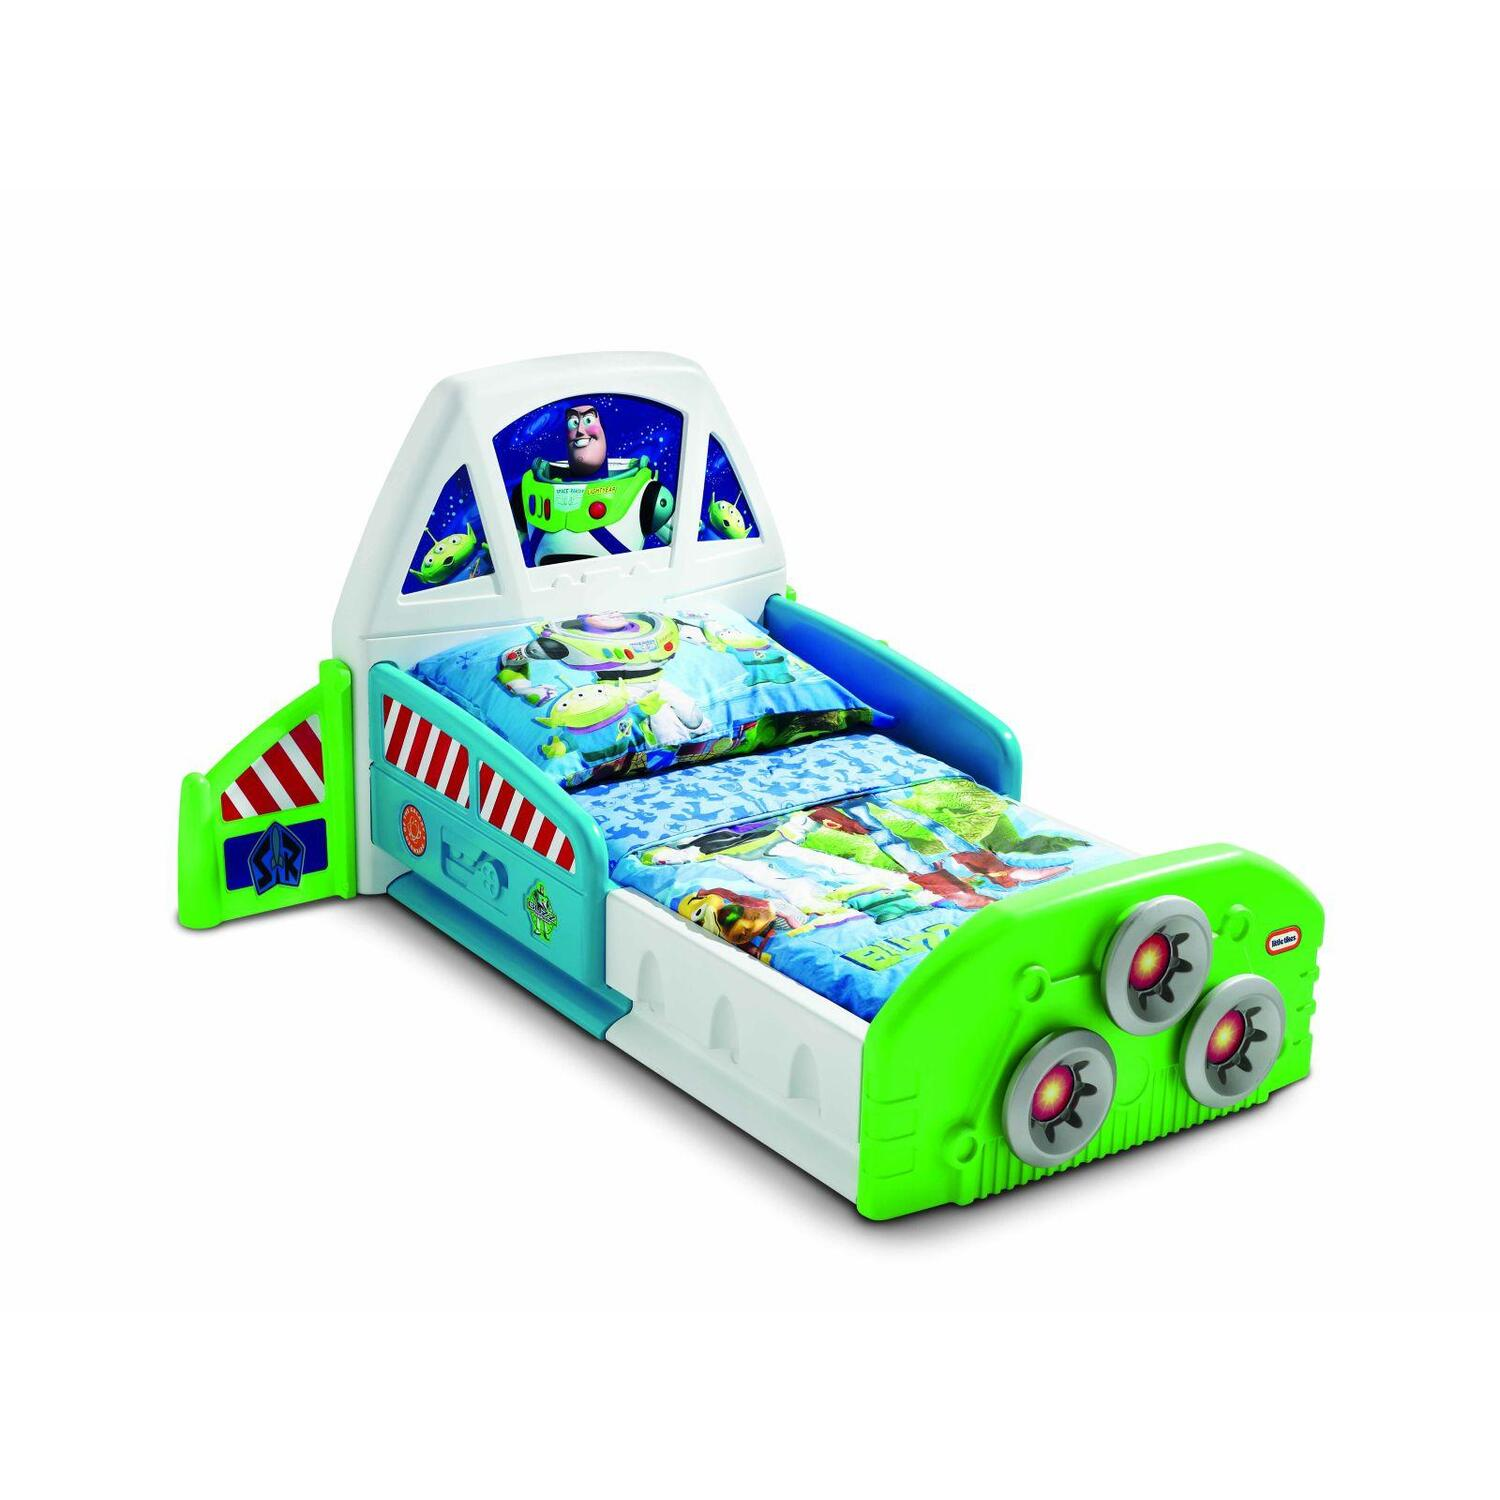 Buzz Lightyear Spaceship Toddler Bed